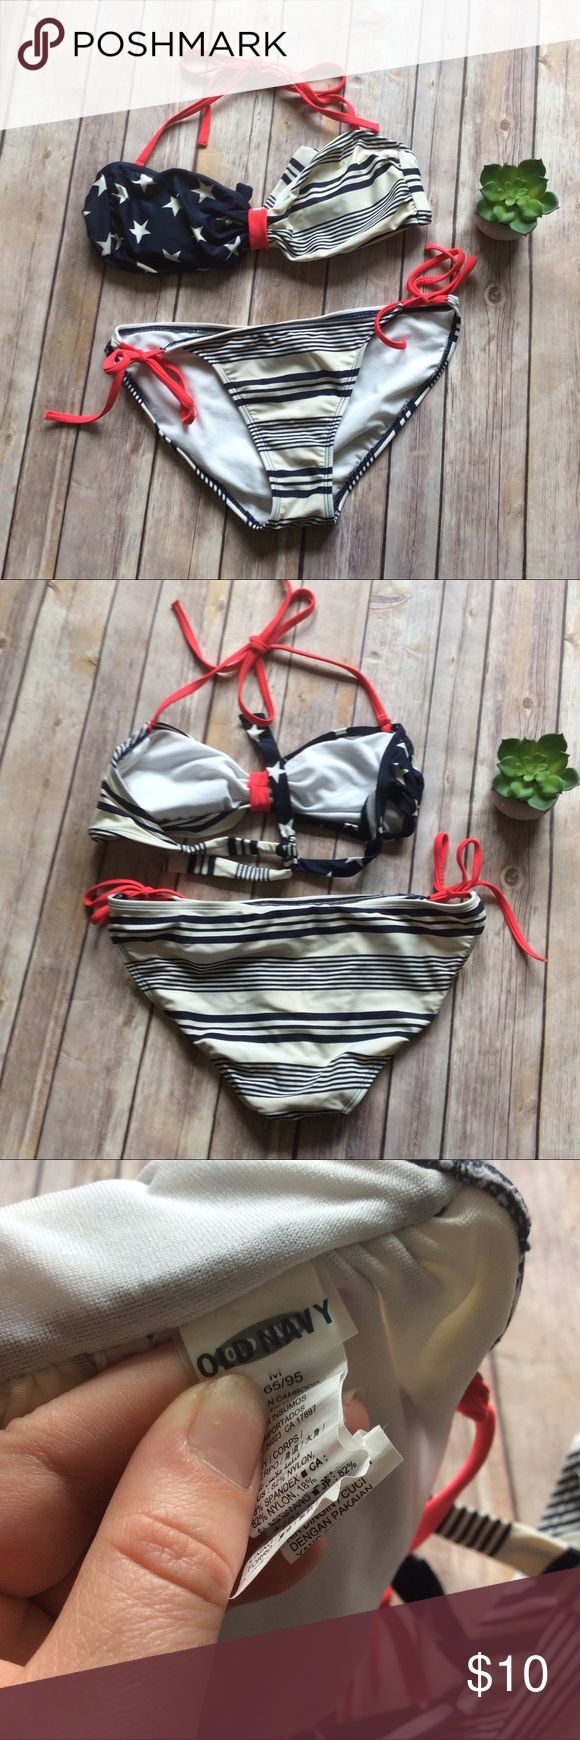 Old Navy Bikini size Medium Cute Stars and Stripes Bikini set from Old Navy, there are a couple spots with very minor scuffs but they are barely noticeable ❌no trades, holds, or lowball offers. ✅Clean and smoke free home, quick shipping, bundle discount, always! 🎁Free gift with $15+ bundle. Old Navy Swim Bikinis